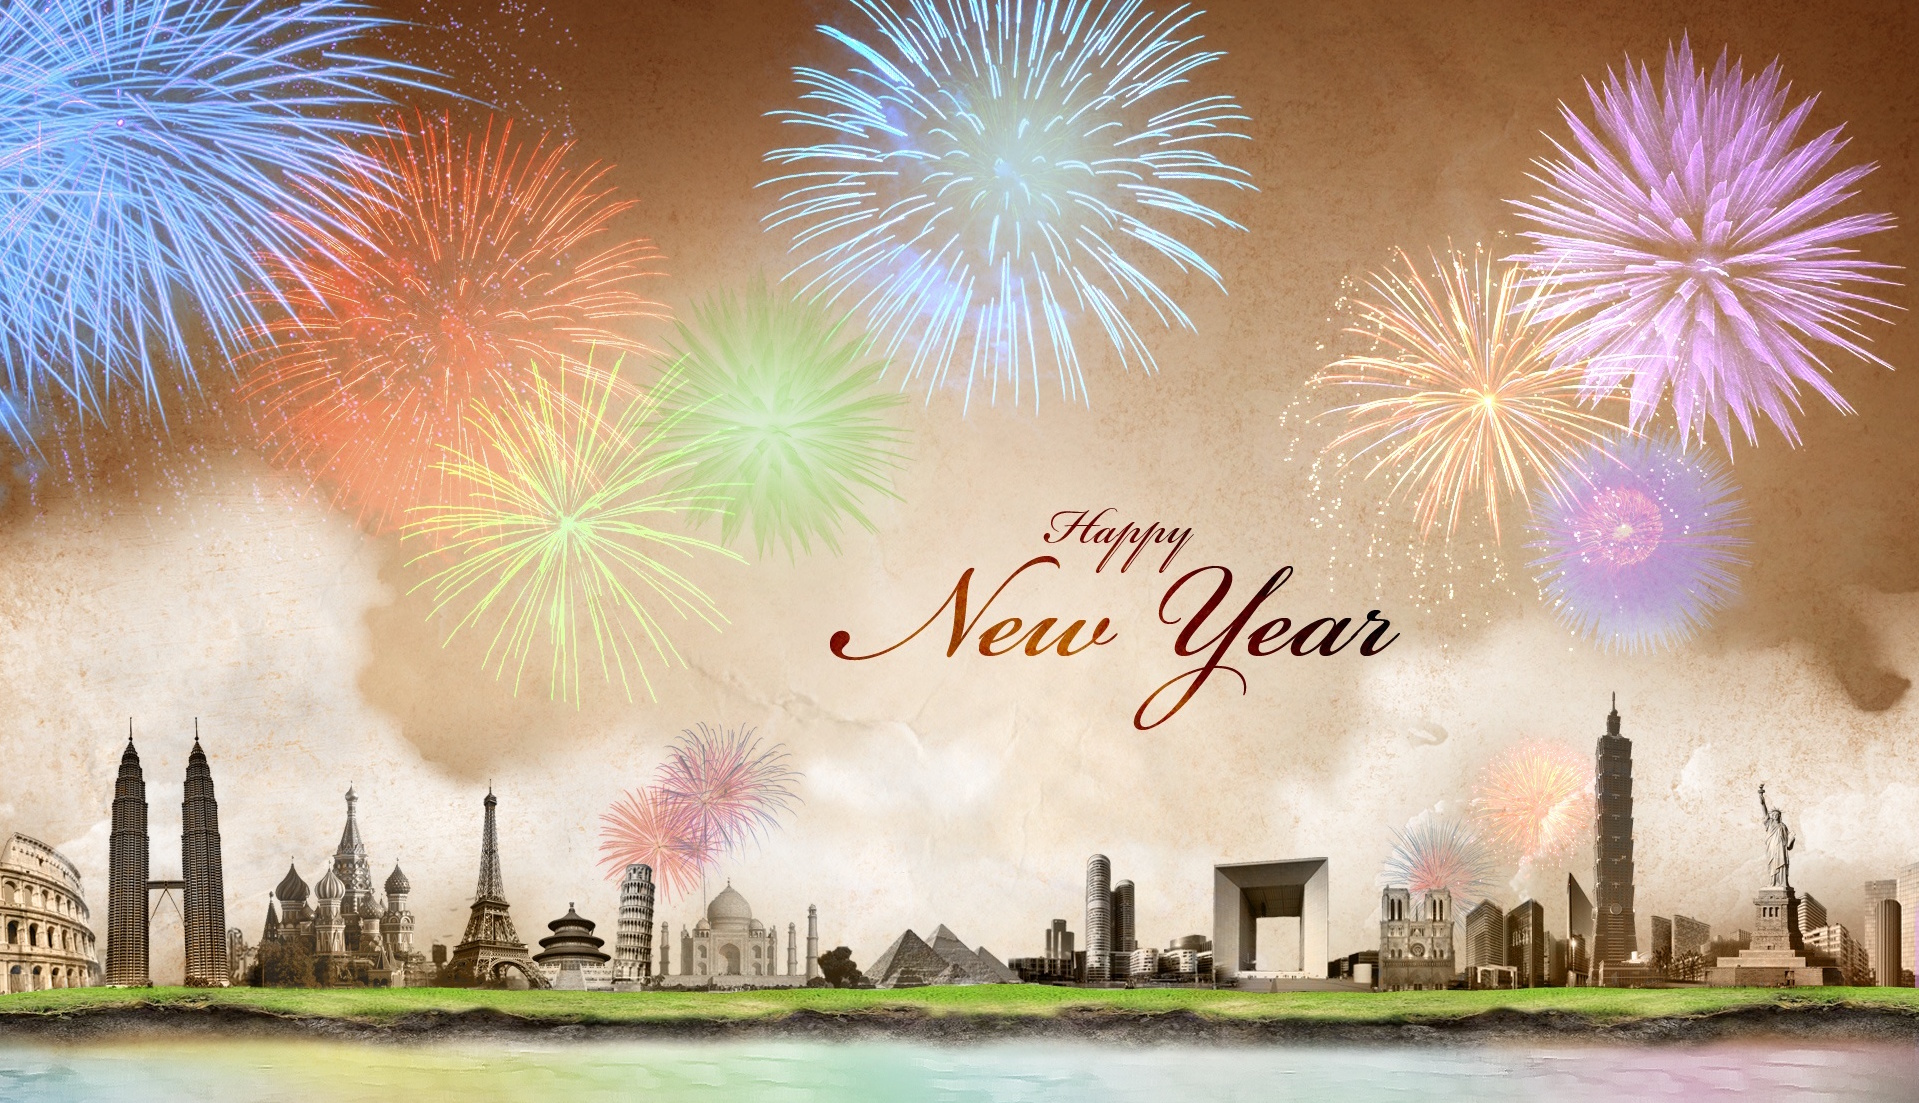 New Year Wallpaper - Happy New Year 2017 London , HD Wallpaper & Backgrounds